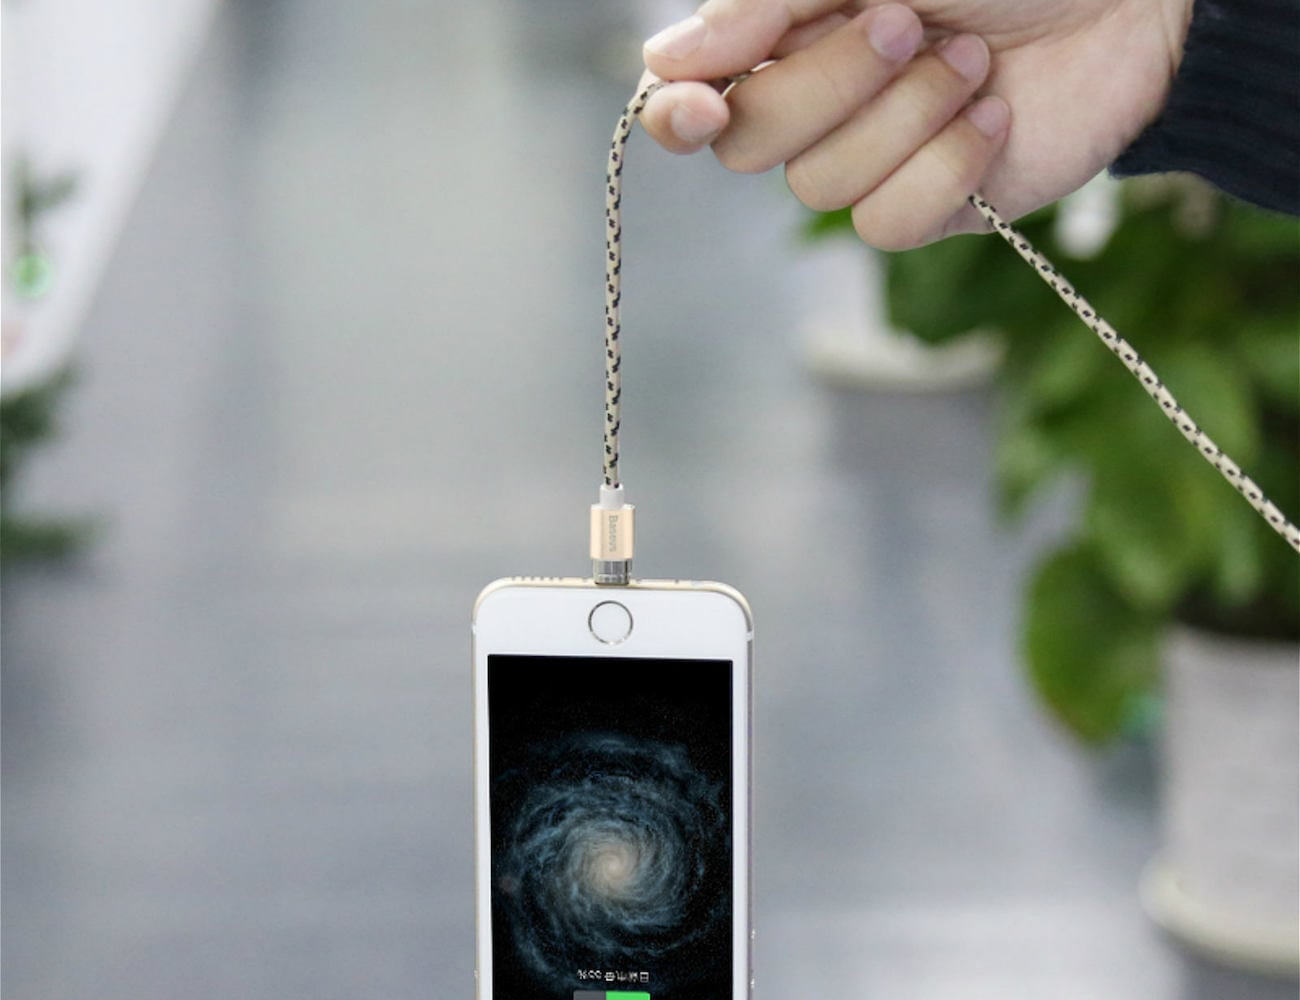 Magnetic Lightning Cable by Baseus